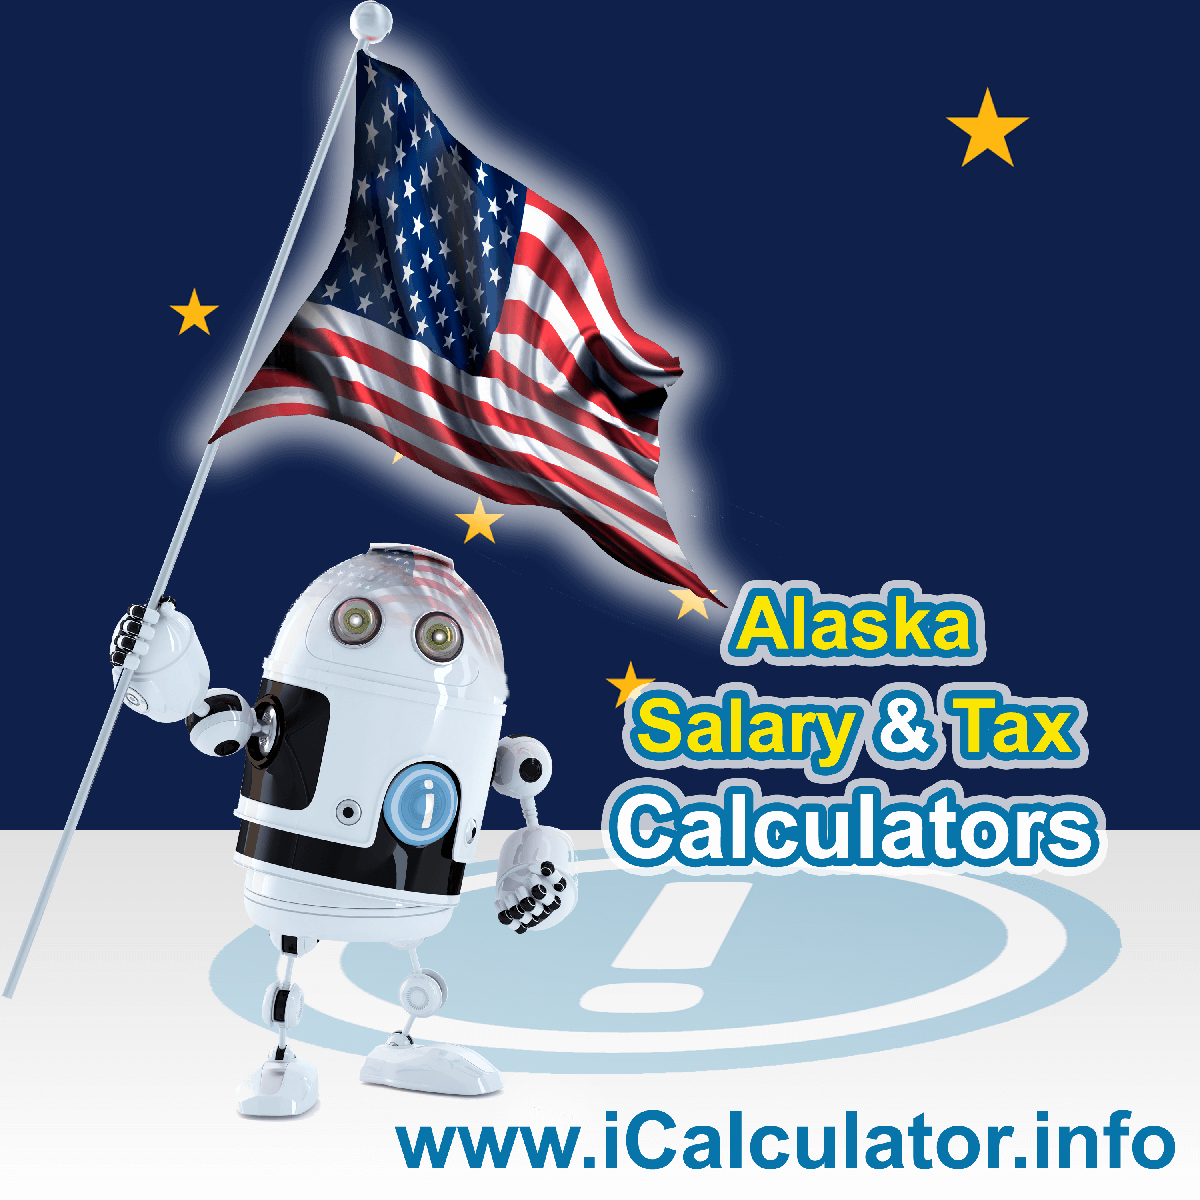 Alaska Salary Calculator 2020 | iCalculator | The Alaska Salary Calculator allows you to quickly calculate your salary after tax including Alaska State Tax, Federal State Tax, Medicare Deductions, Social Security, Capital Gains and other income tax and salary deductions complete with supporting Alaska state tax tables